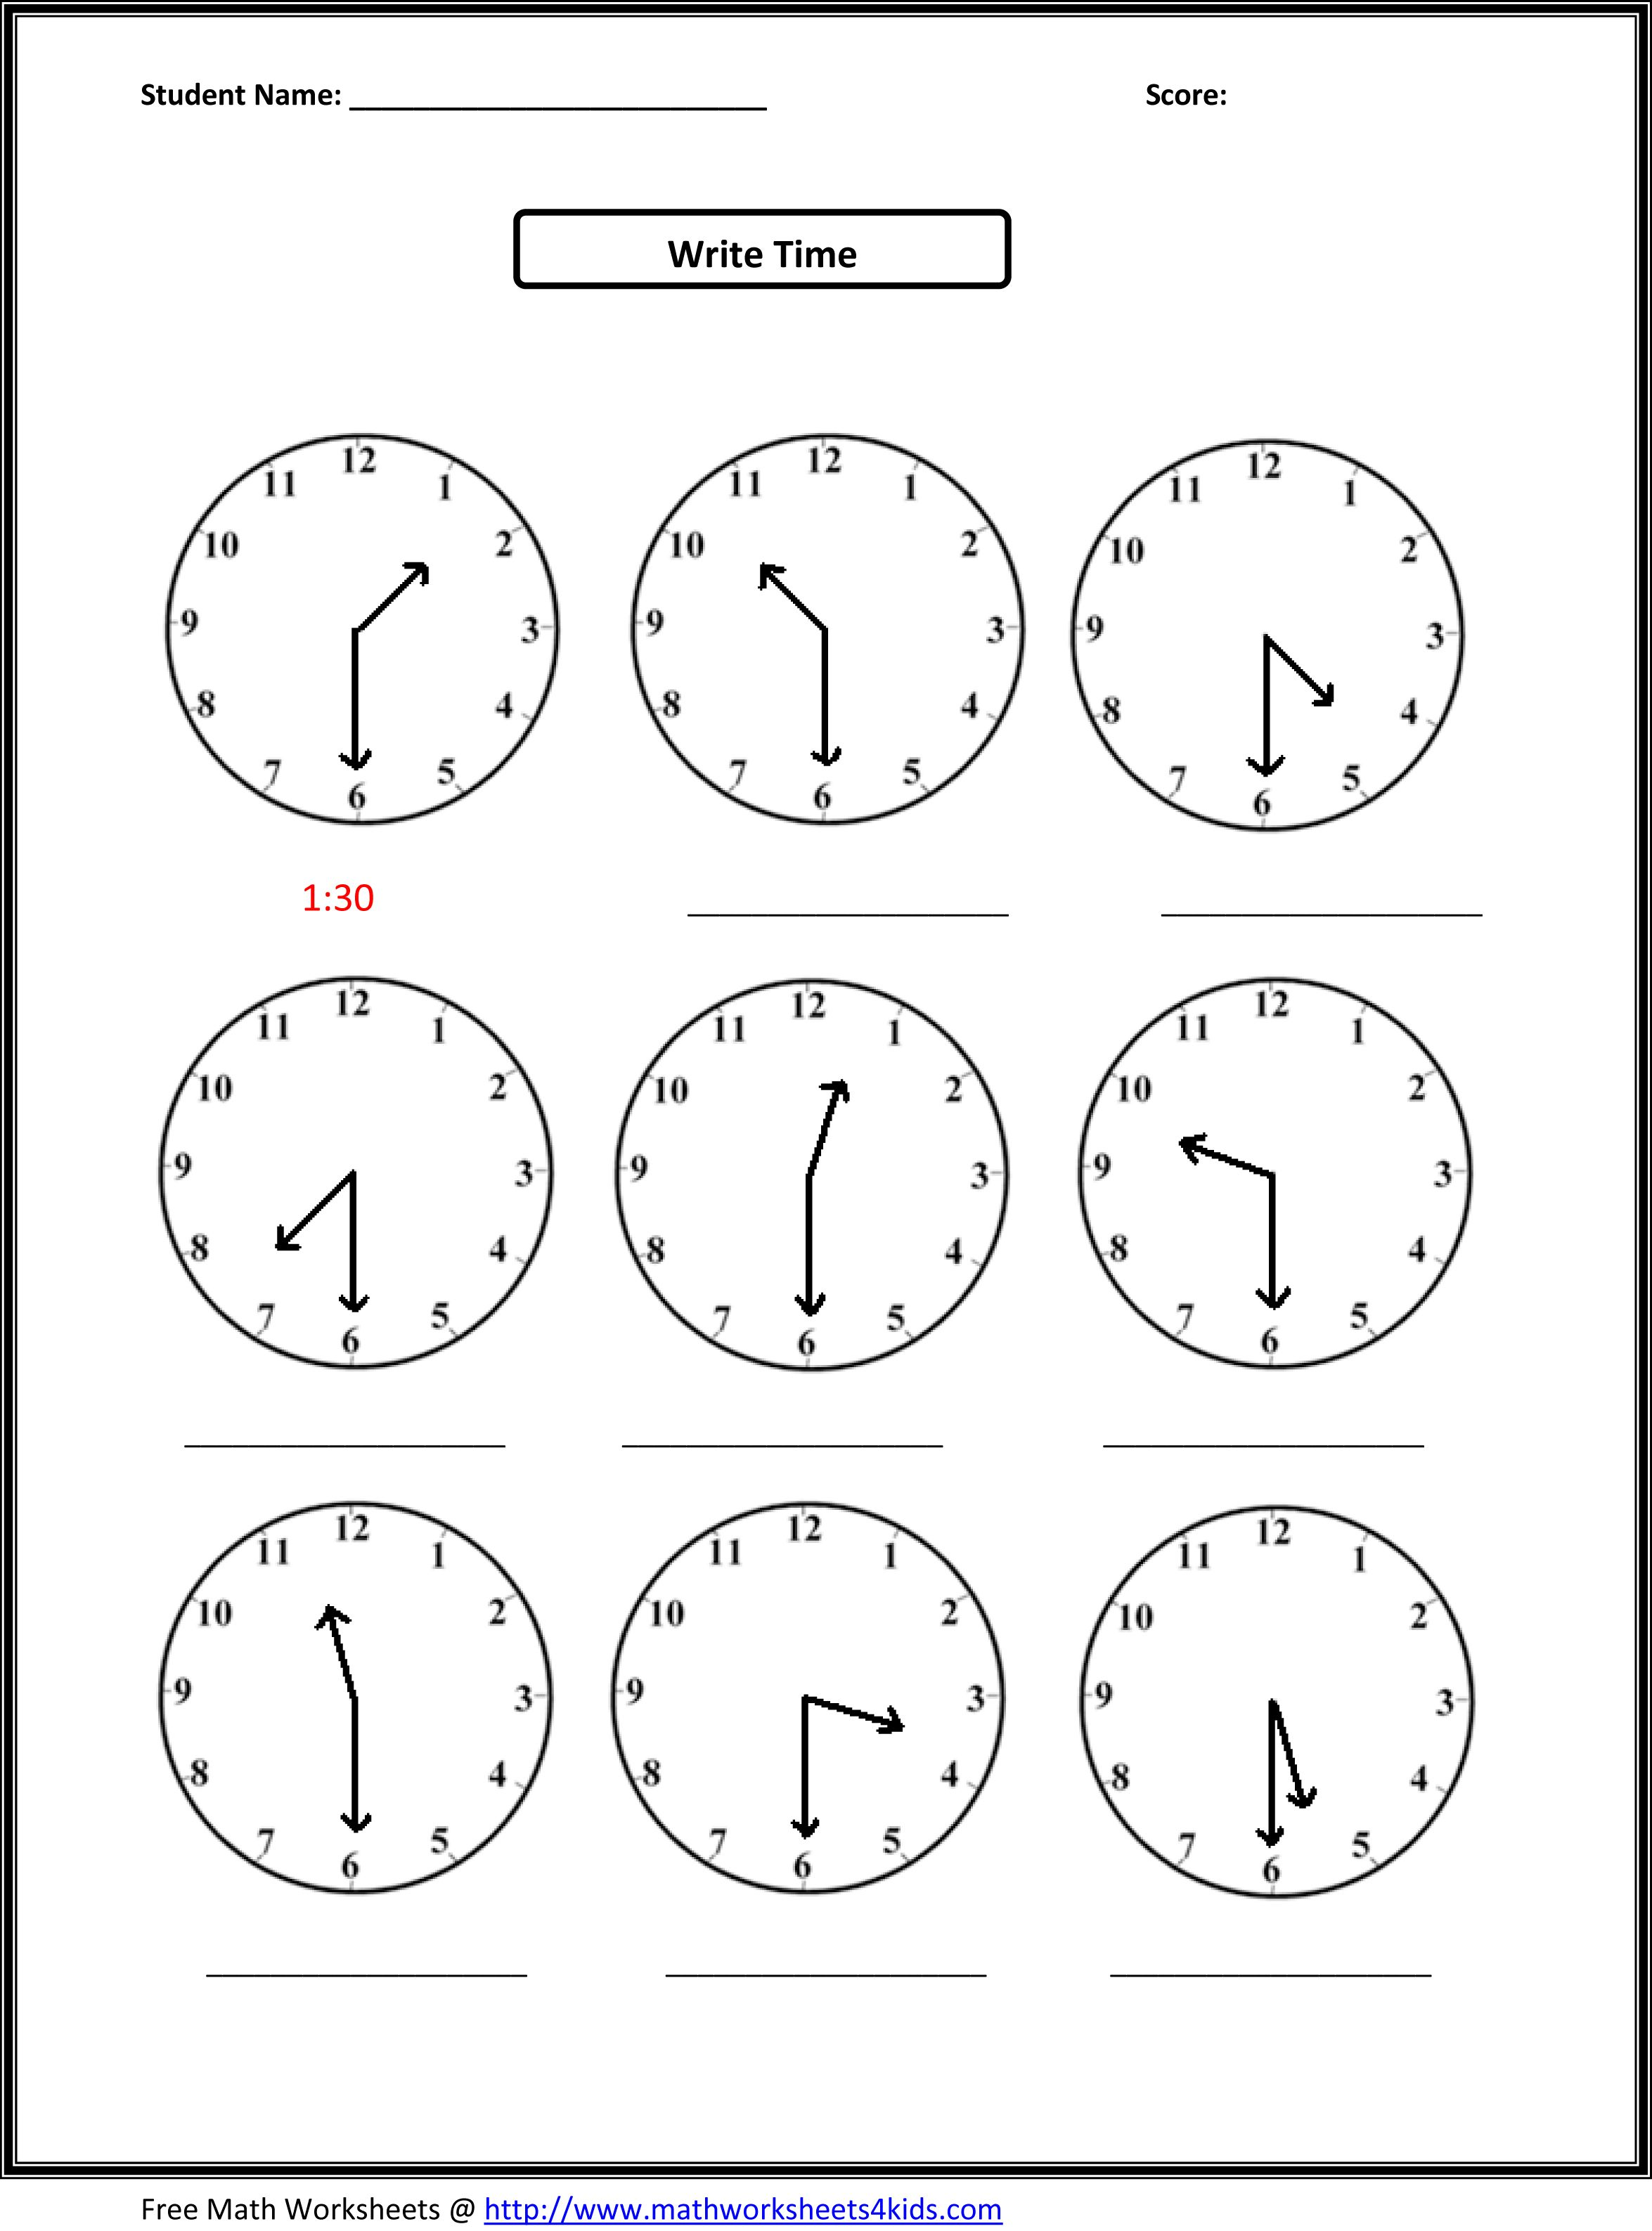 Proatmealus  Marvellous Worksheet On Time For Grade   Reocurent With Exciting Free Printable Telling Time Worksheets Nd Grade  Reocurent With Archaic  Times Table Worksheet Also Subtraction Worksheet Kindergarten In Addition Esl Pronunciation Worksheets And Th Grade Algebra Worksheets As Well As Kindergarten Addition Worksheet Additionally Printable Th Grade Worksheets From Reocurentcom With Proatmealus  Exciting Worksheet On Time For Grade   Reocurent With Archaic Free Printable Telling Time Worksheets Nd Grade  Reocurent And Marvellous  Times Table Worksheet Also Subtraction Worksheet Kindergarten In Addition Esl Pronunciation Worksheets From Reocurentcom